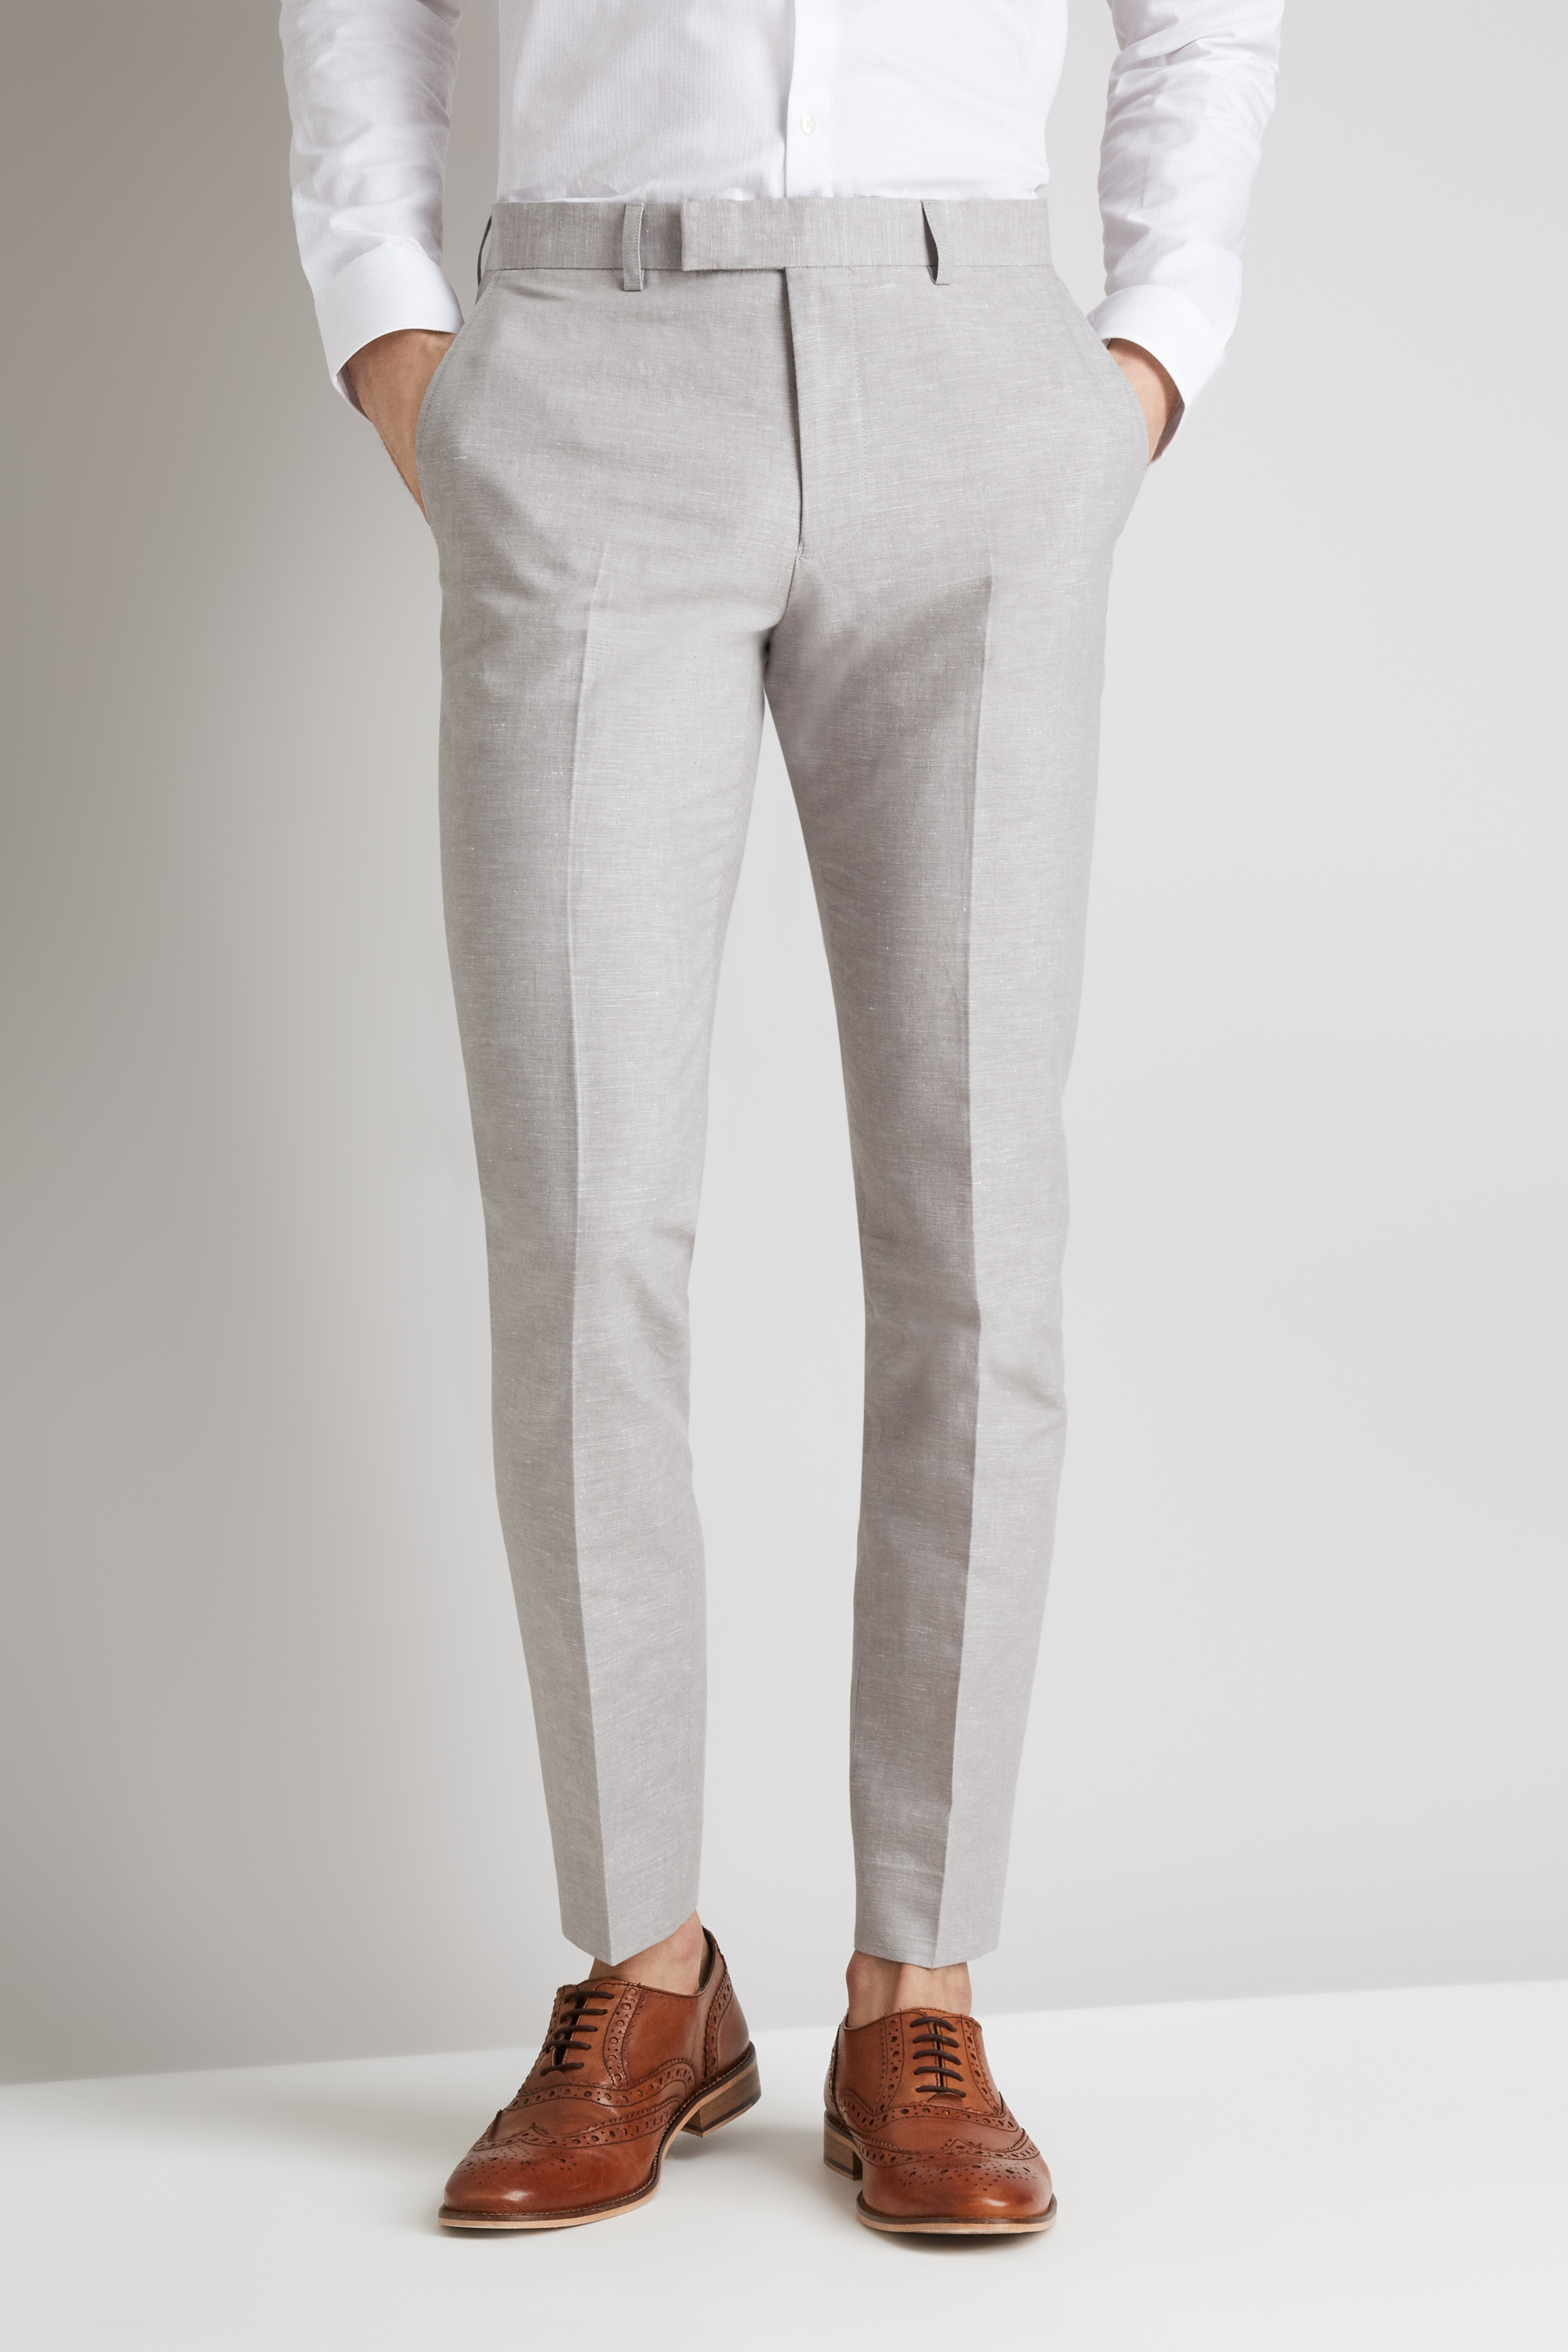 2d419d8fac3 Details about Moss London Mens Suit Trousers Light Grey Linen Cotton Formal  Pants